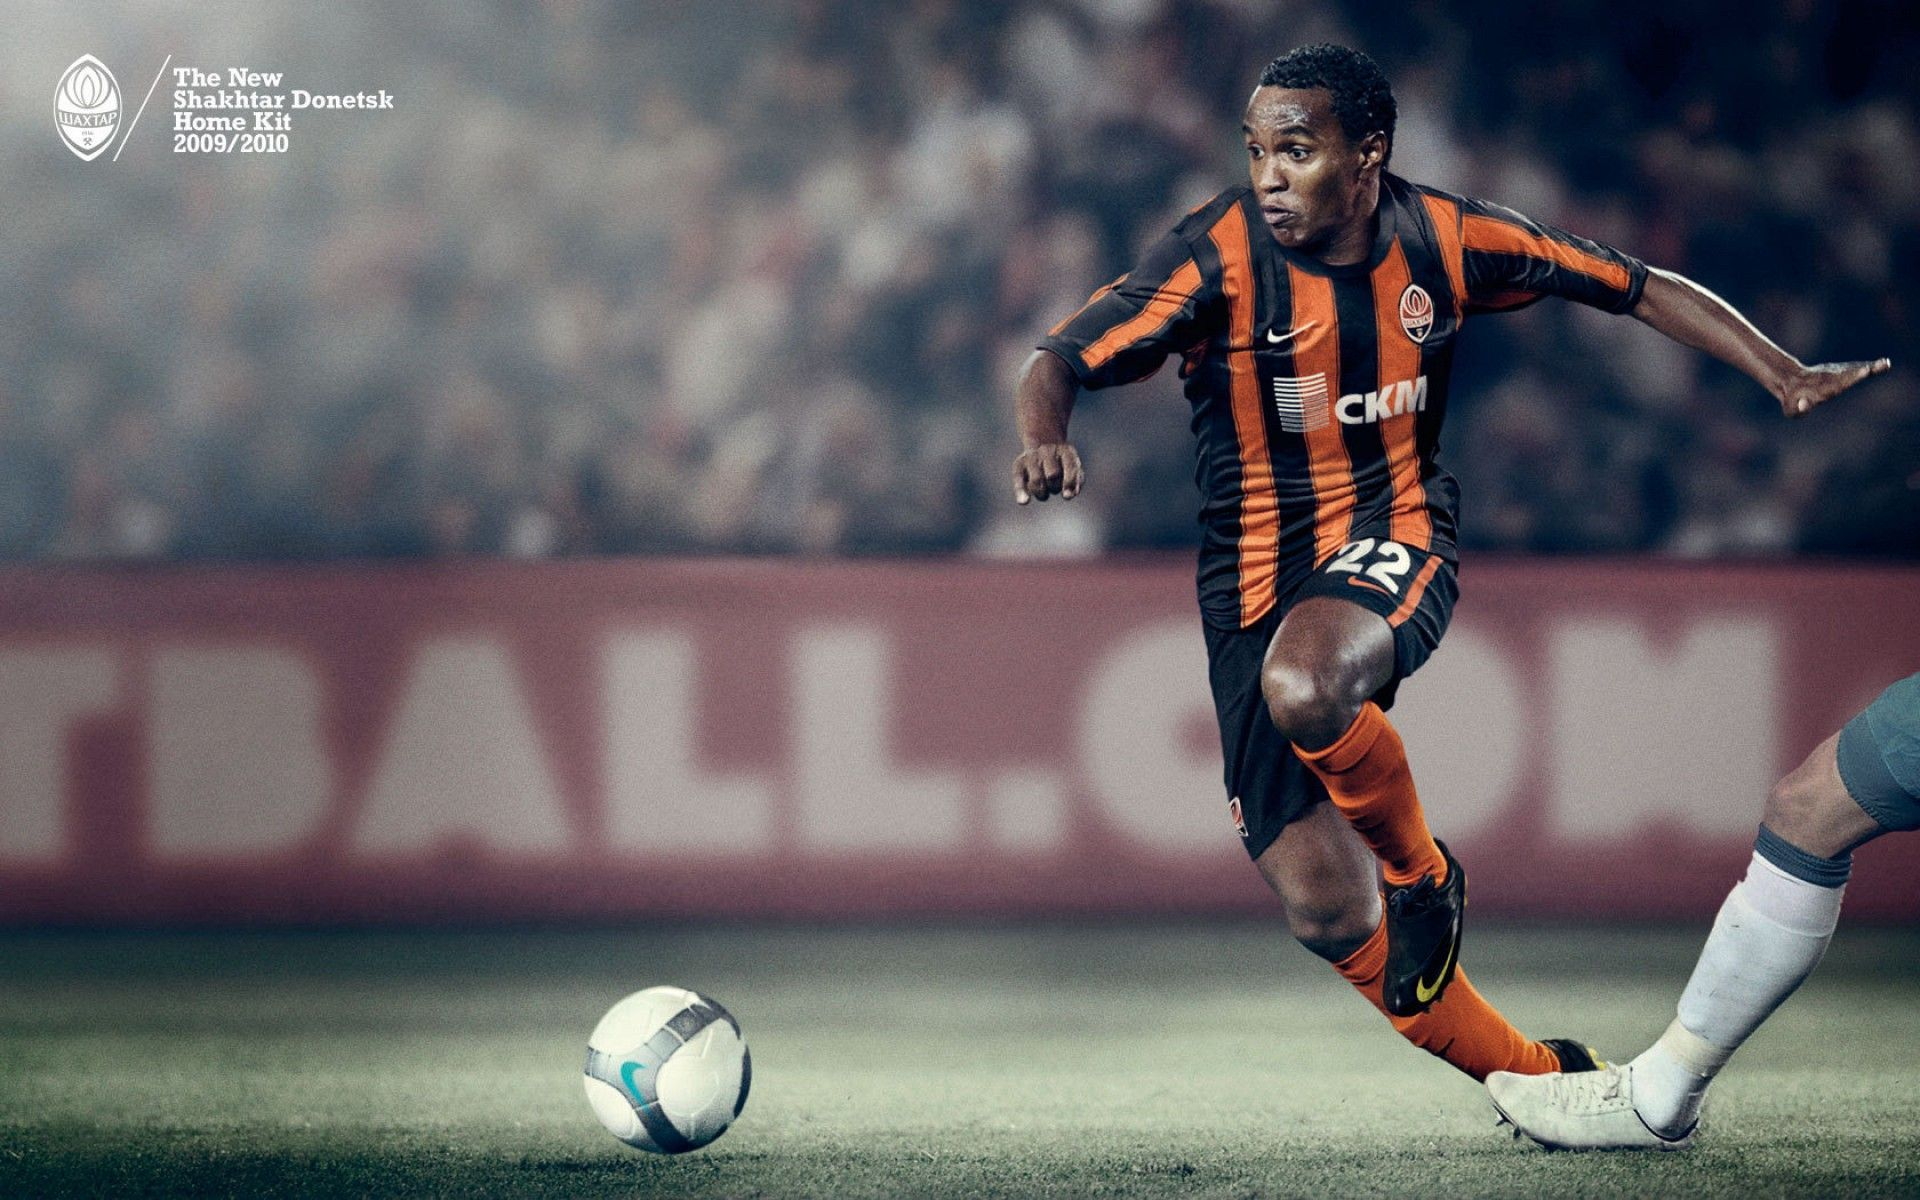 Nike Soccer Wallpaper 2012